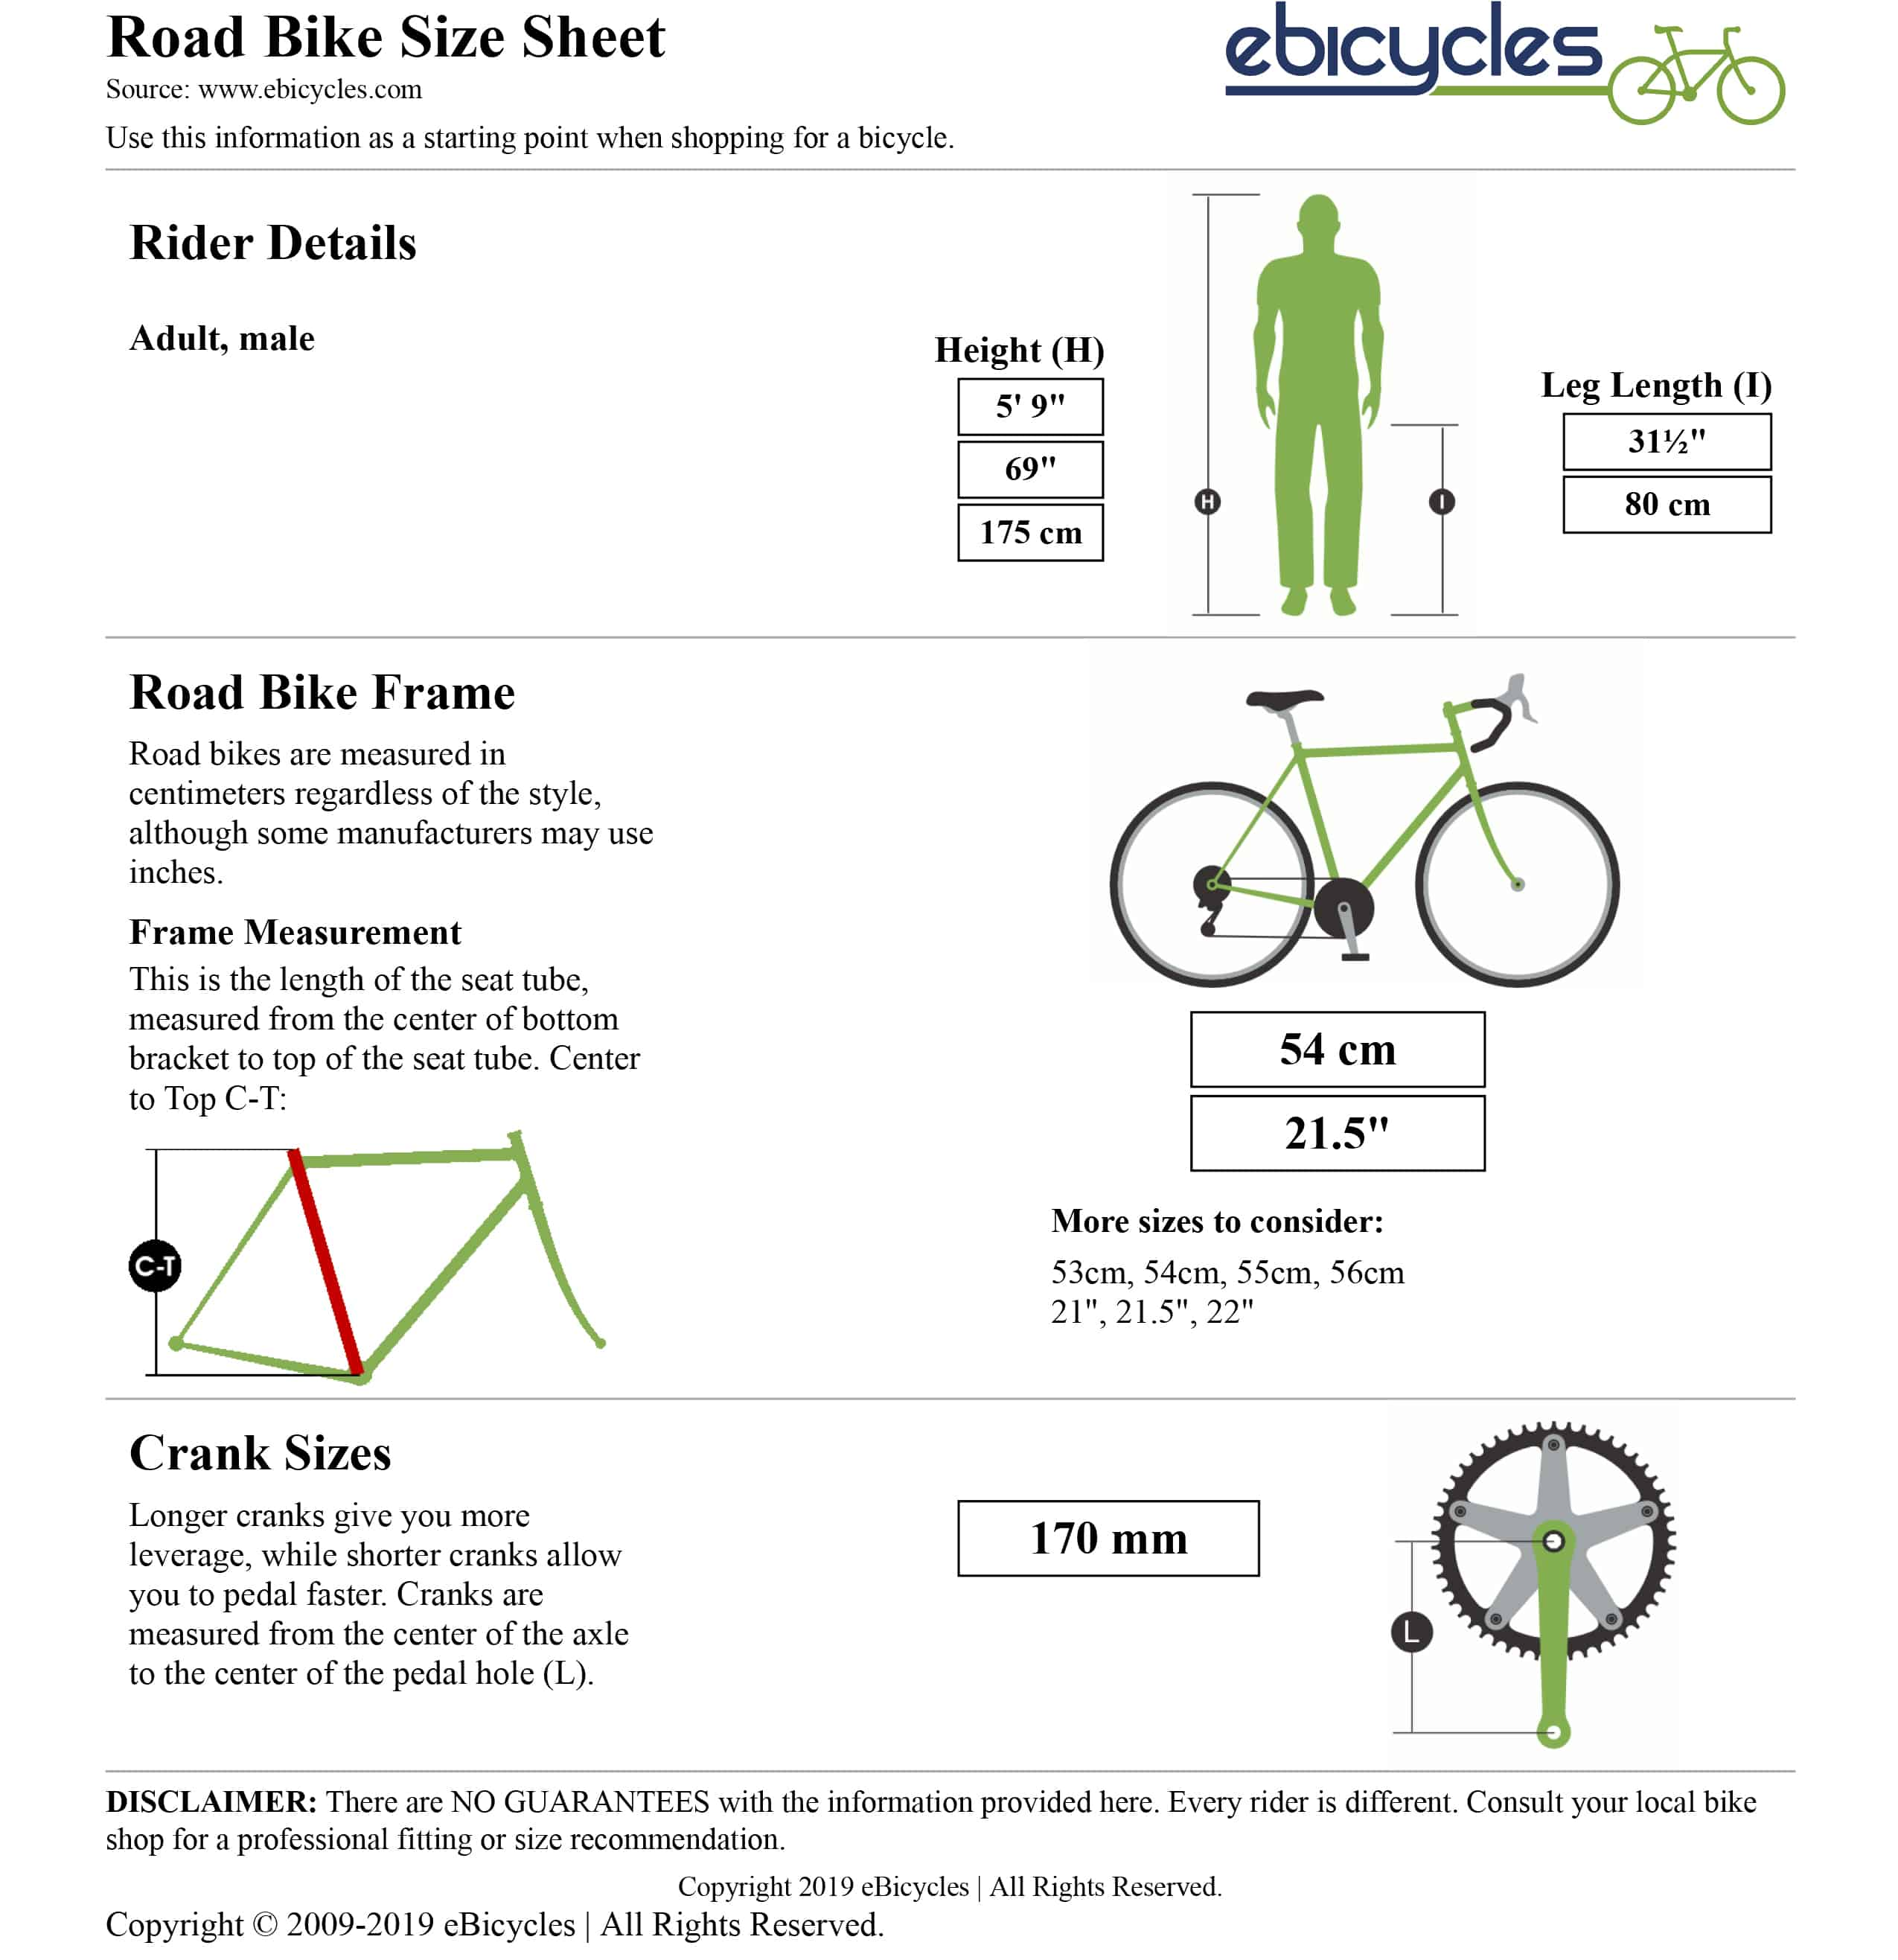 Bike size calculator result